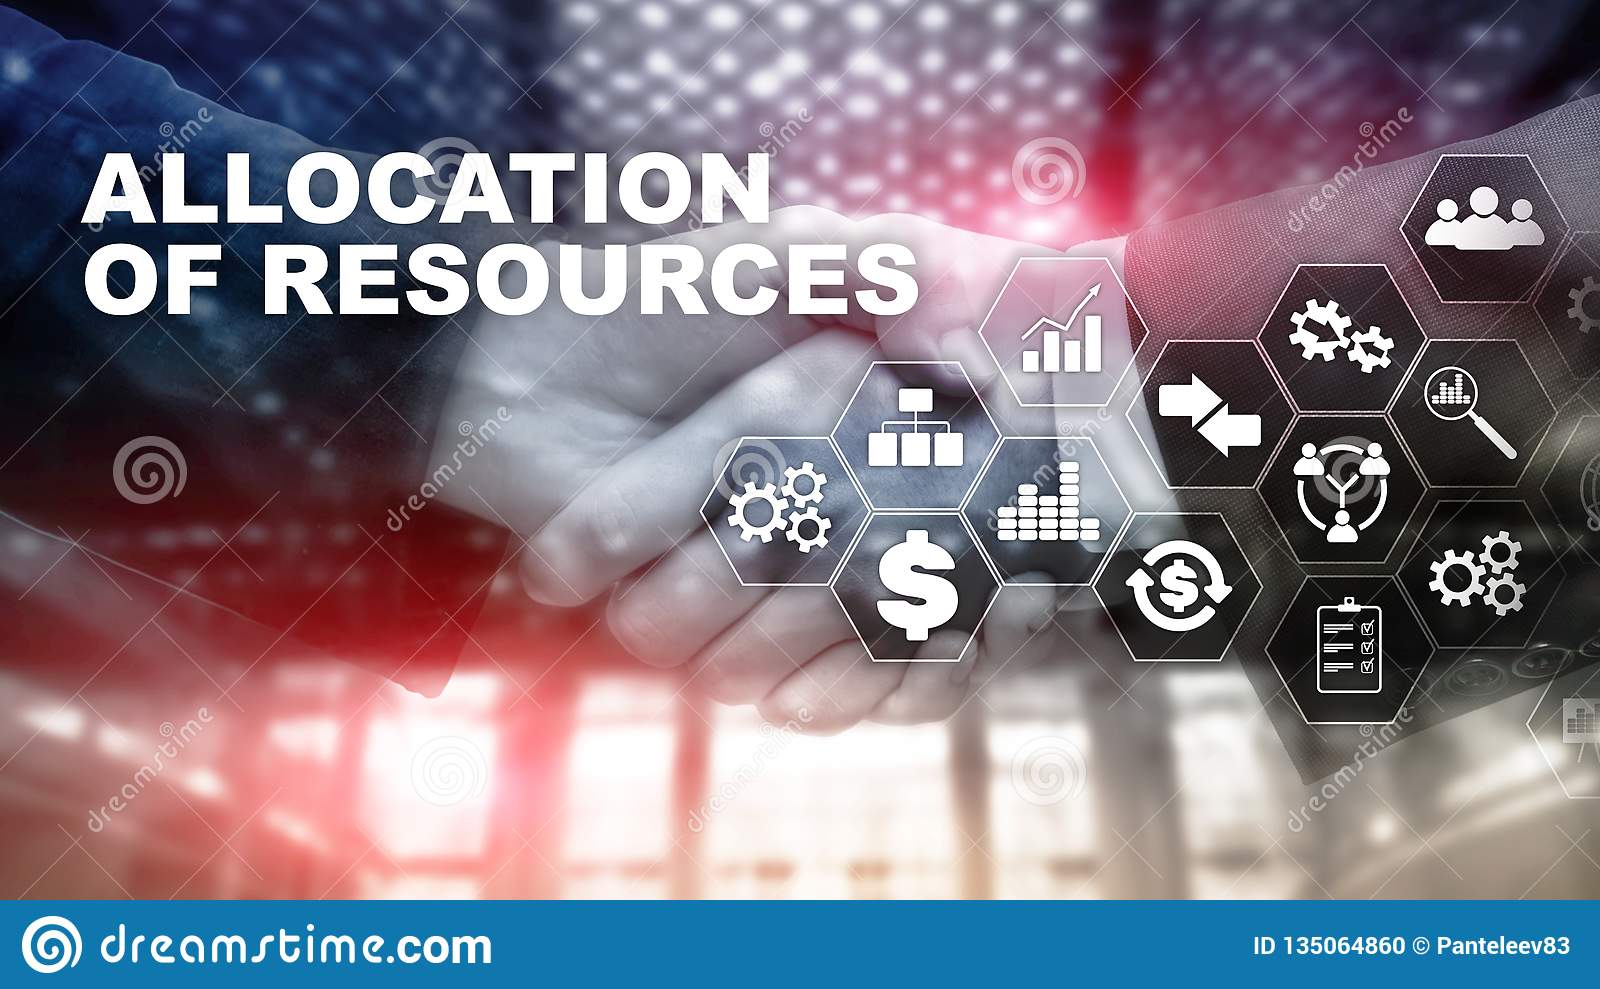 Allocation of resources concept. Strategic planning. Mixed media. Abstract business background. Financial technology and